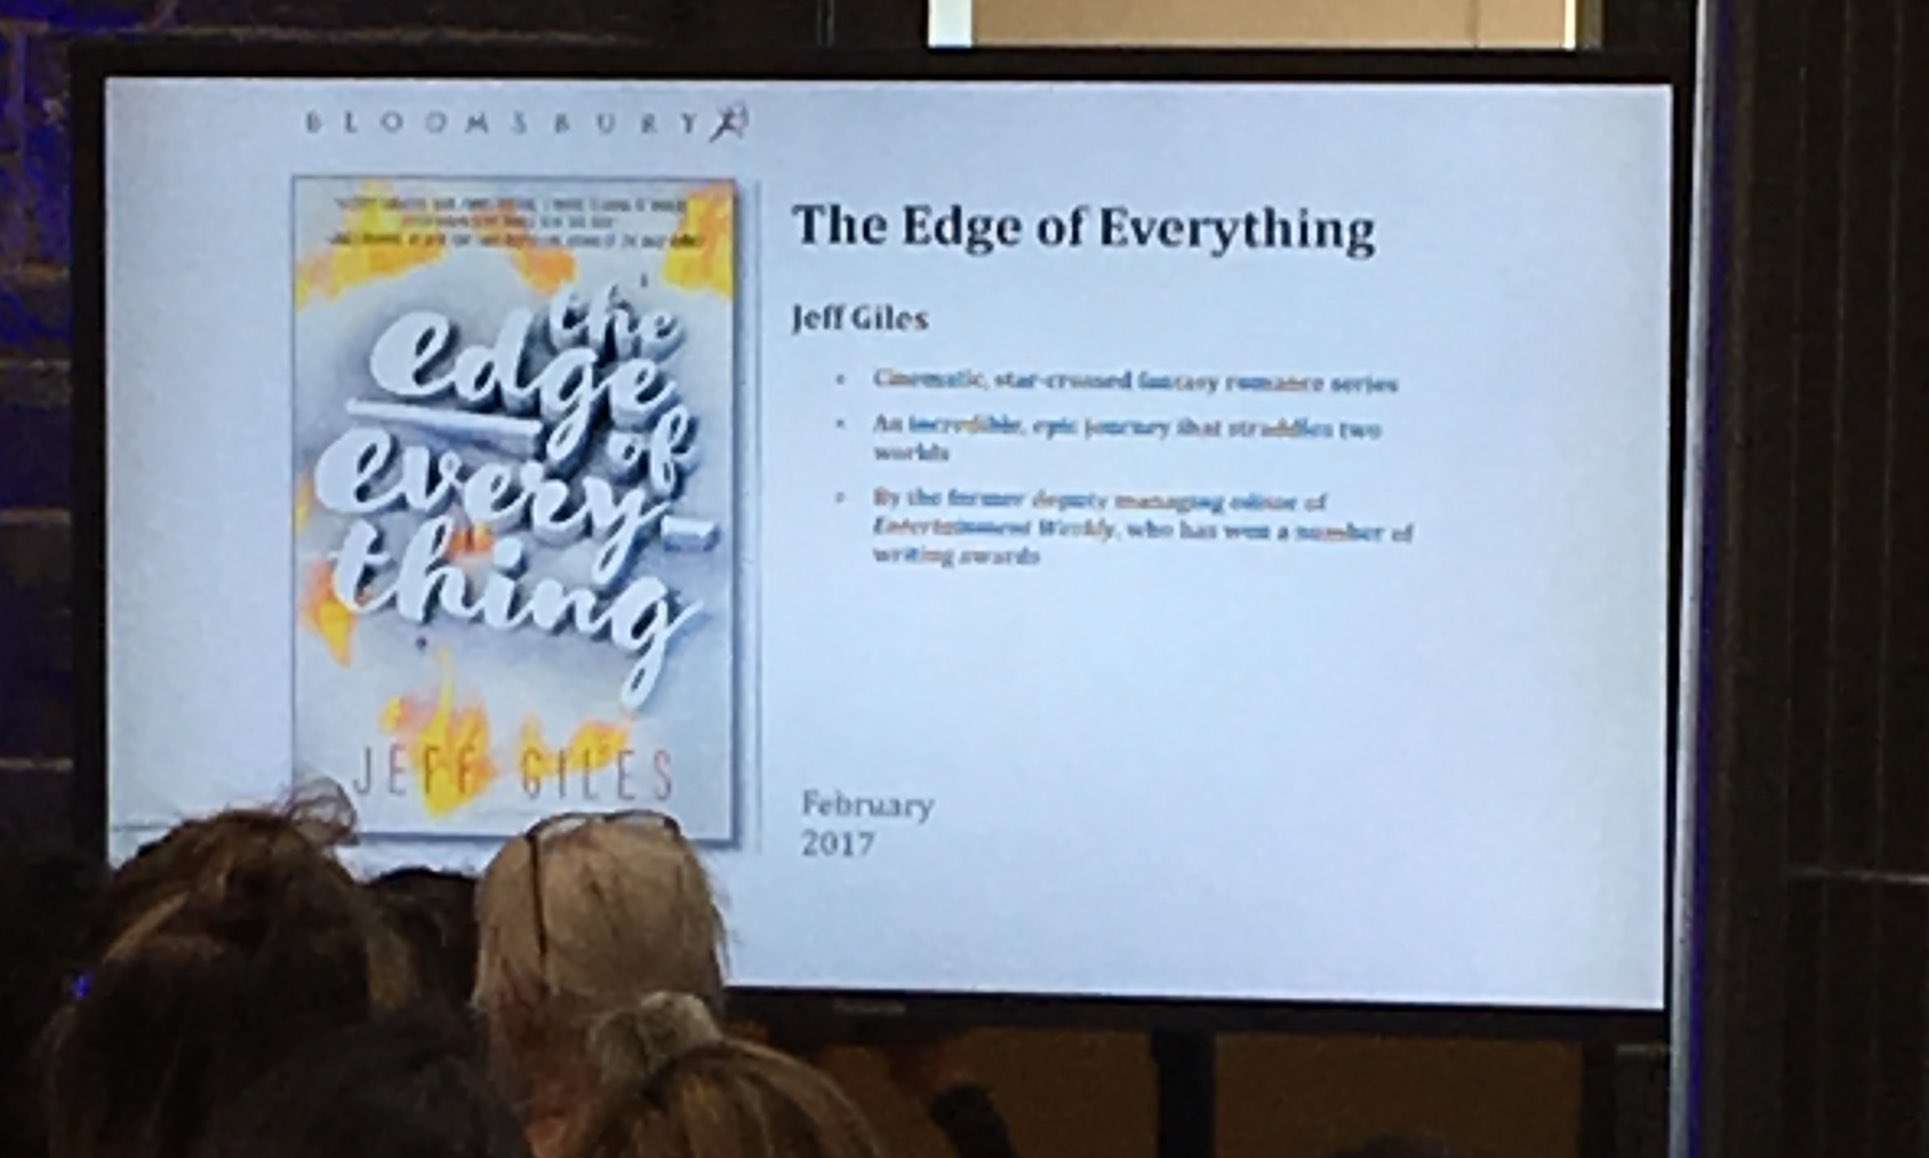 Next: February, The Edge of Everything by Jeff Giles, YA Fantasy series. @BloomsburySyd #YAshowcase https://t.co/VqFVddrhiJ